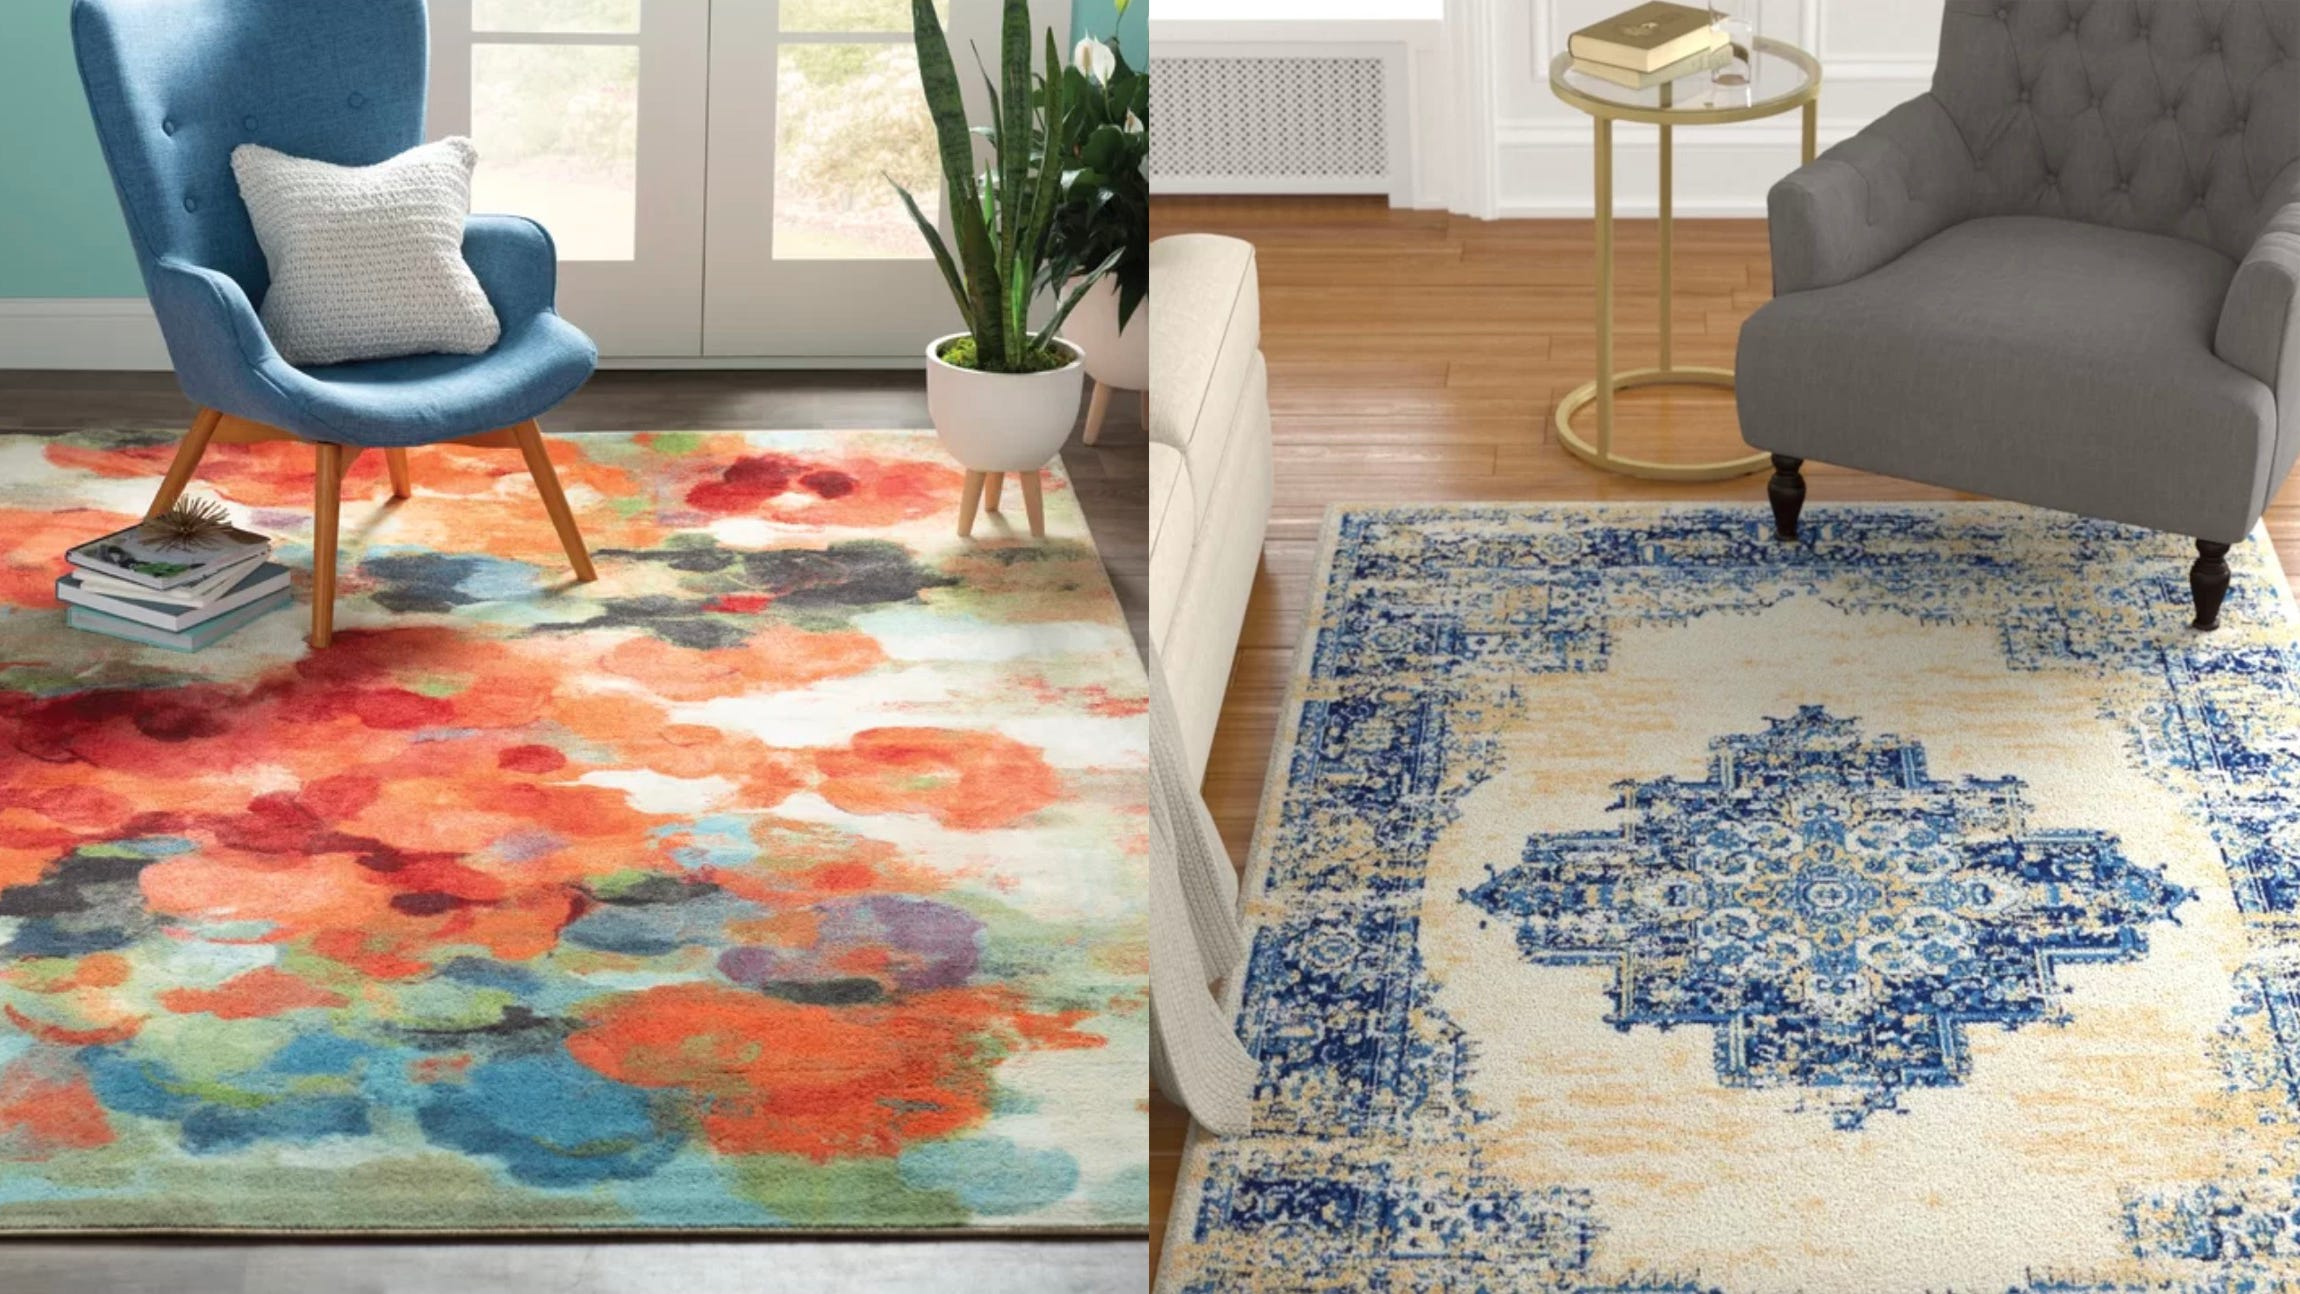 You can find loads of rugs like these are great prices in this sale.